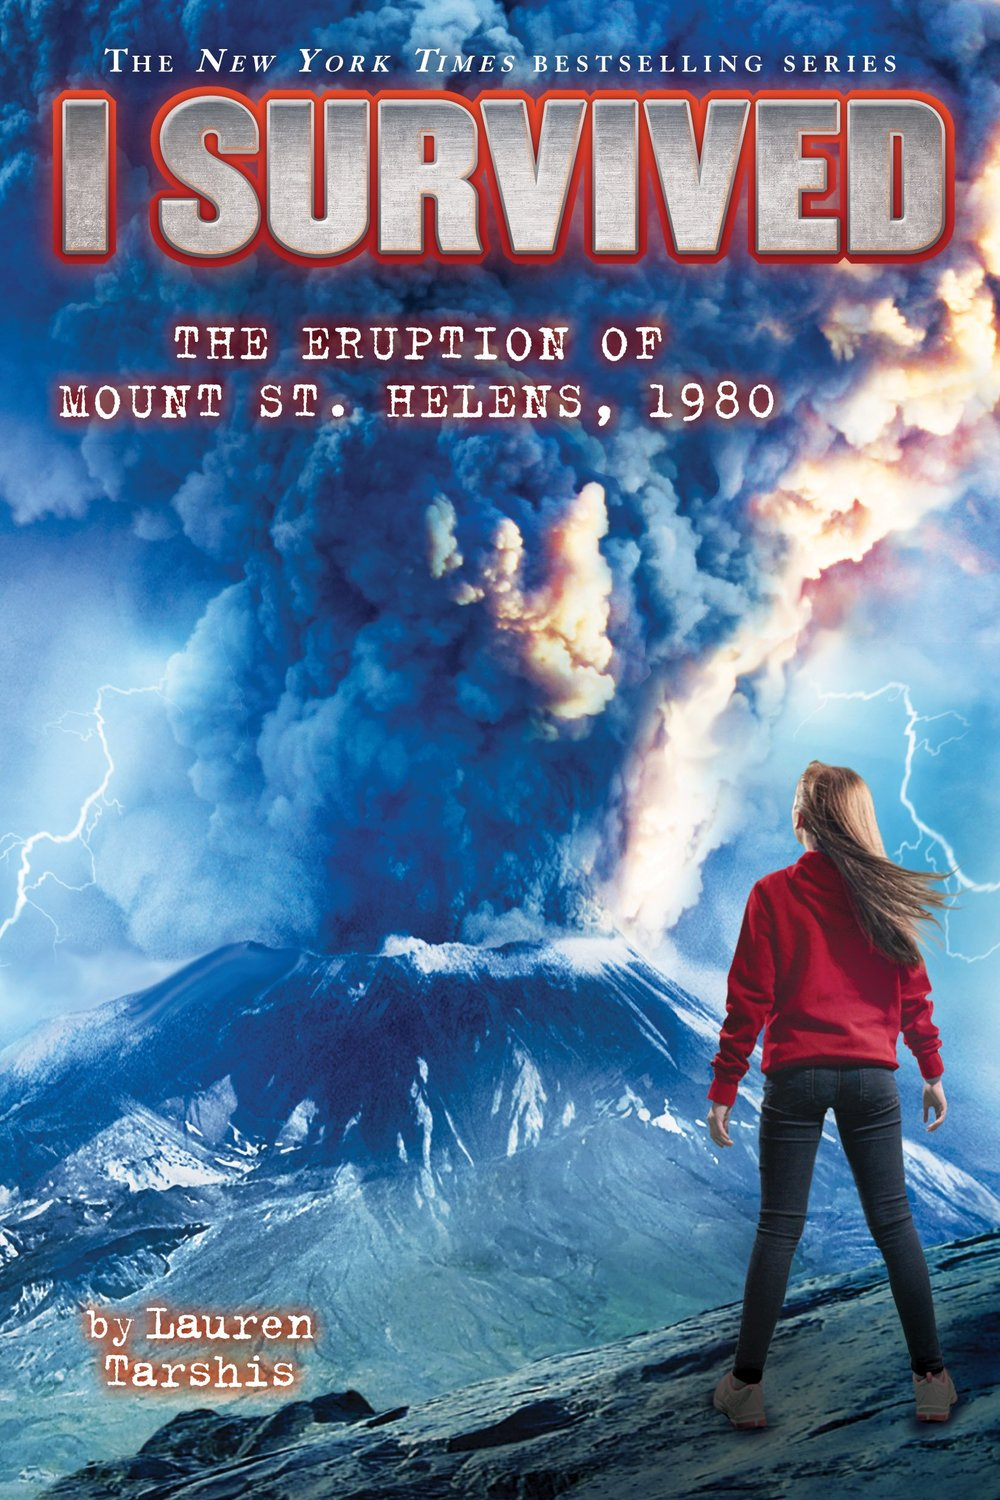 janet-tarshis-i-survived-eruption-mount-st-helens.jpg